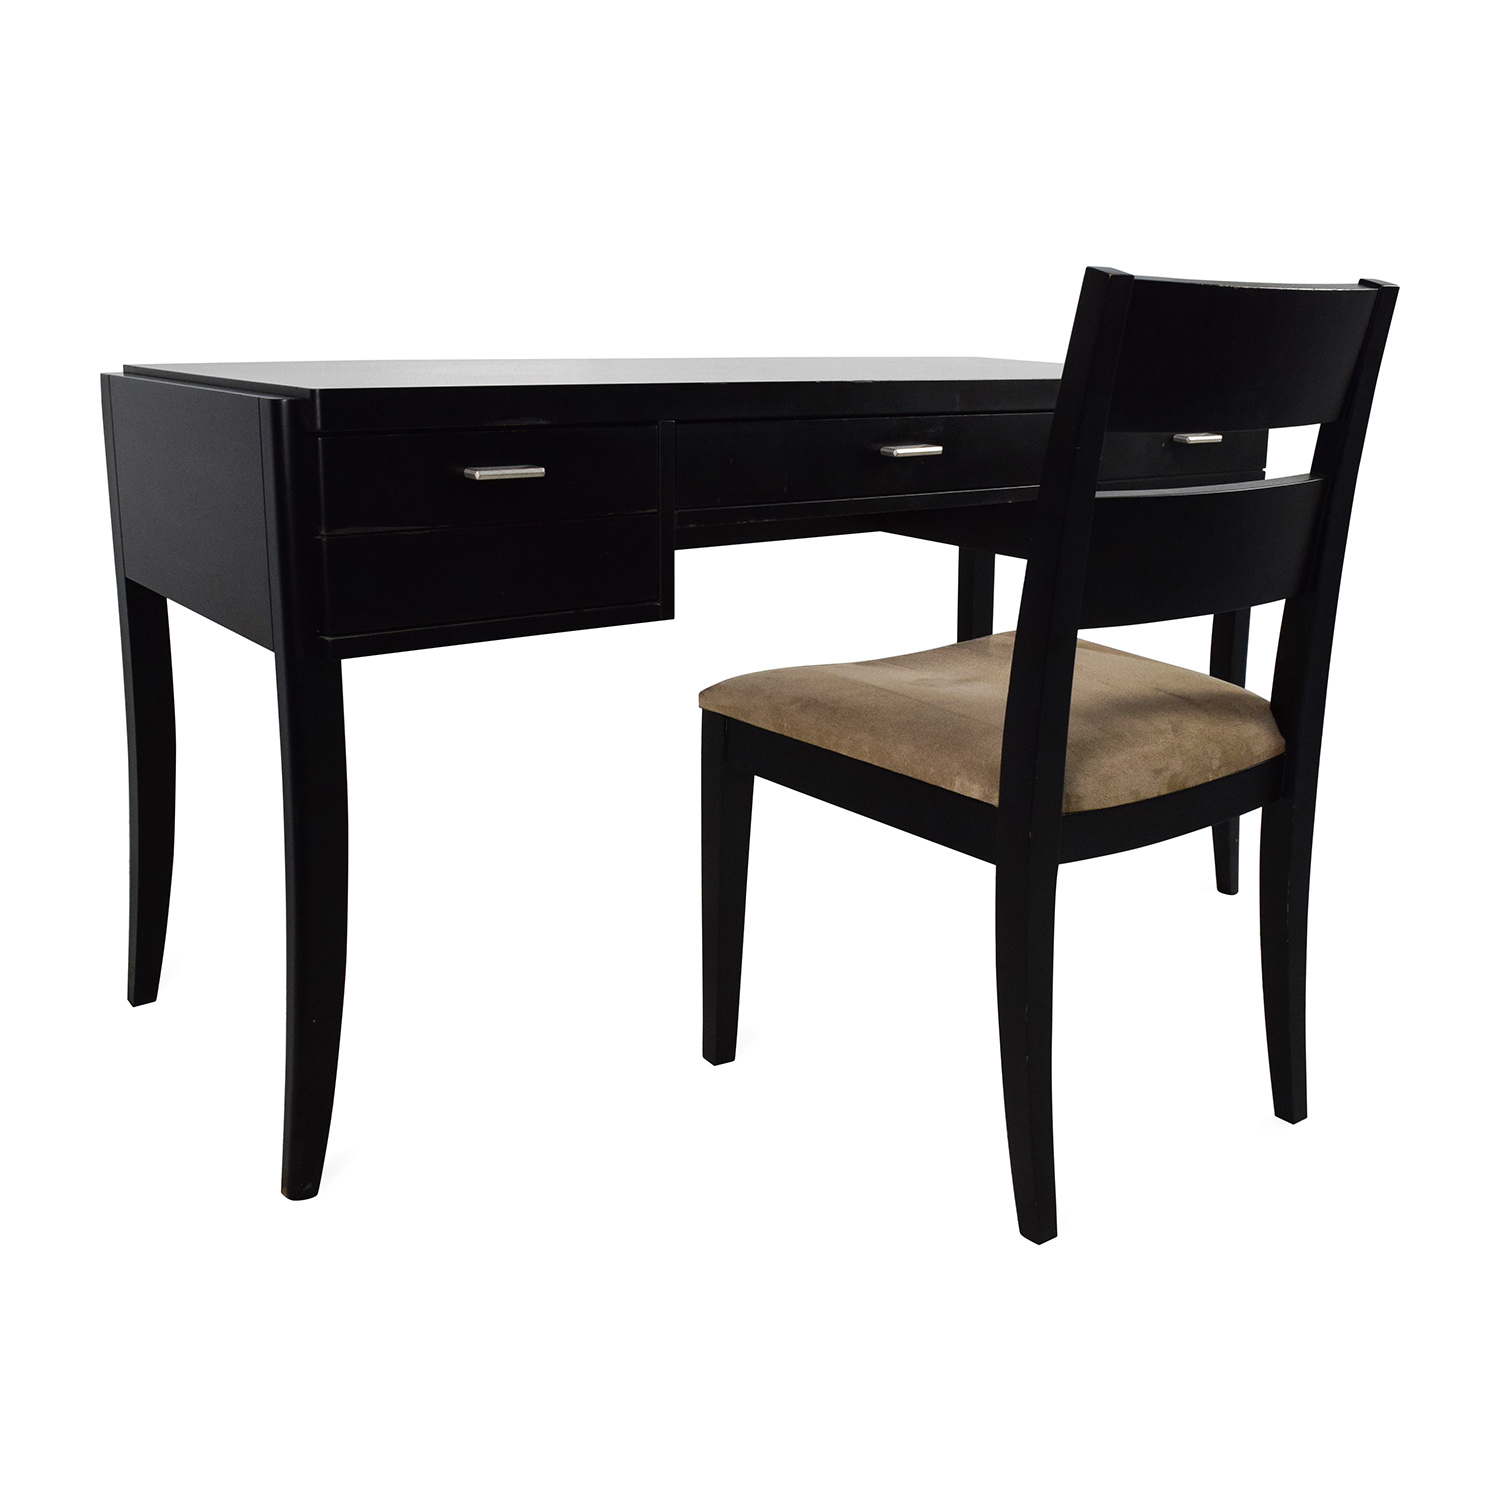 78 OFF  Crate  Barrel Crate  Barrel Black Wood Desk